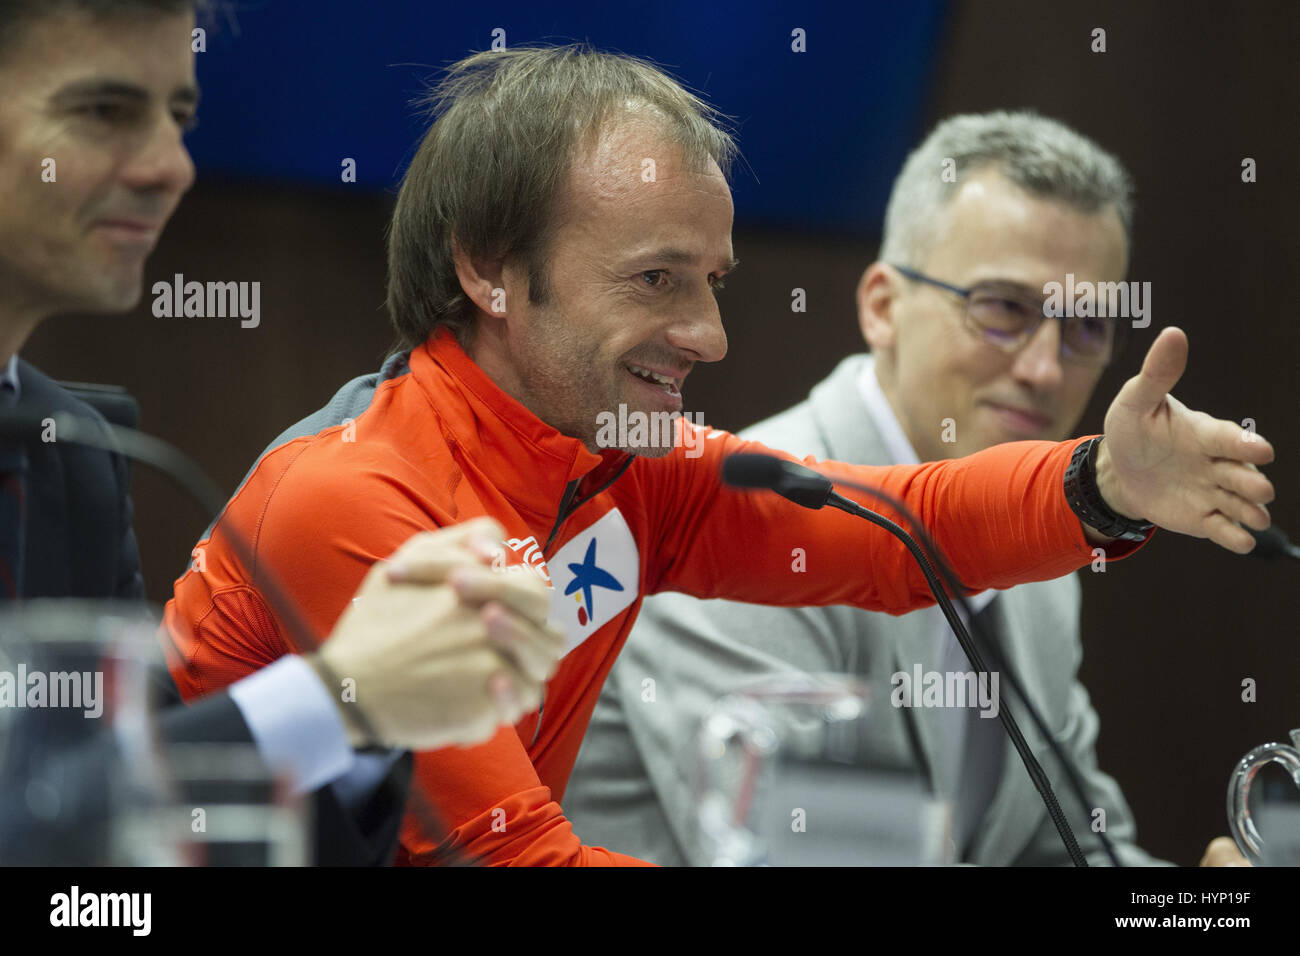 Spanish alpinist Ferran Latorre speaks during the presentation of his next ascent to the Mount Everest, in Barcelona, - Stock Image